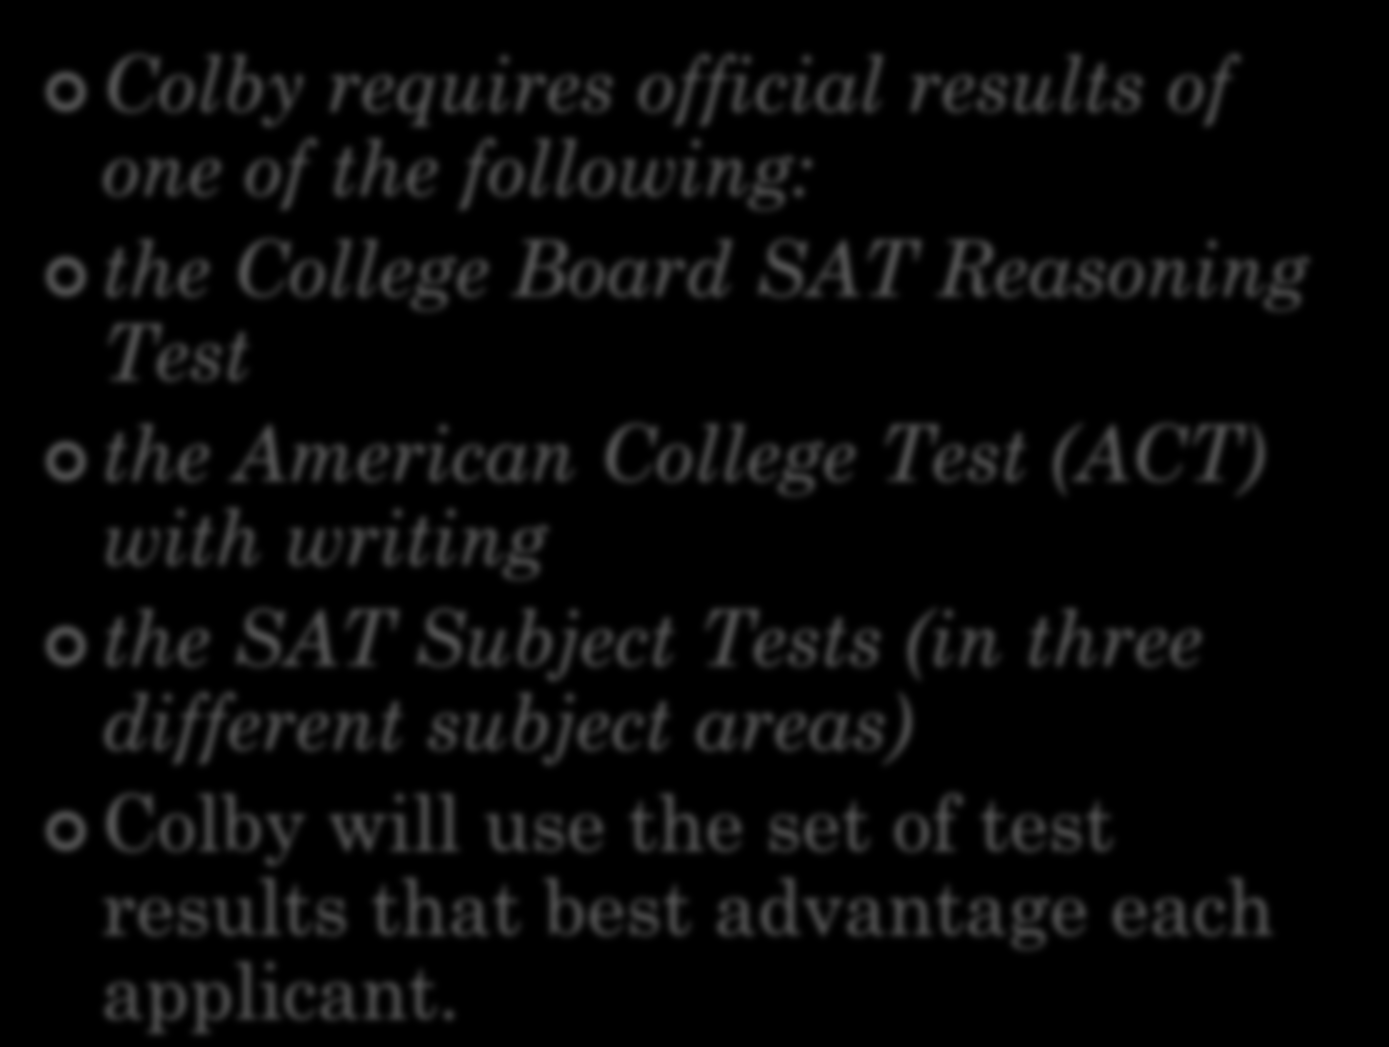 Journalism college subject test requirements